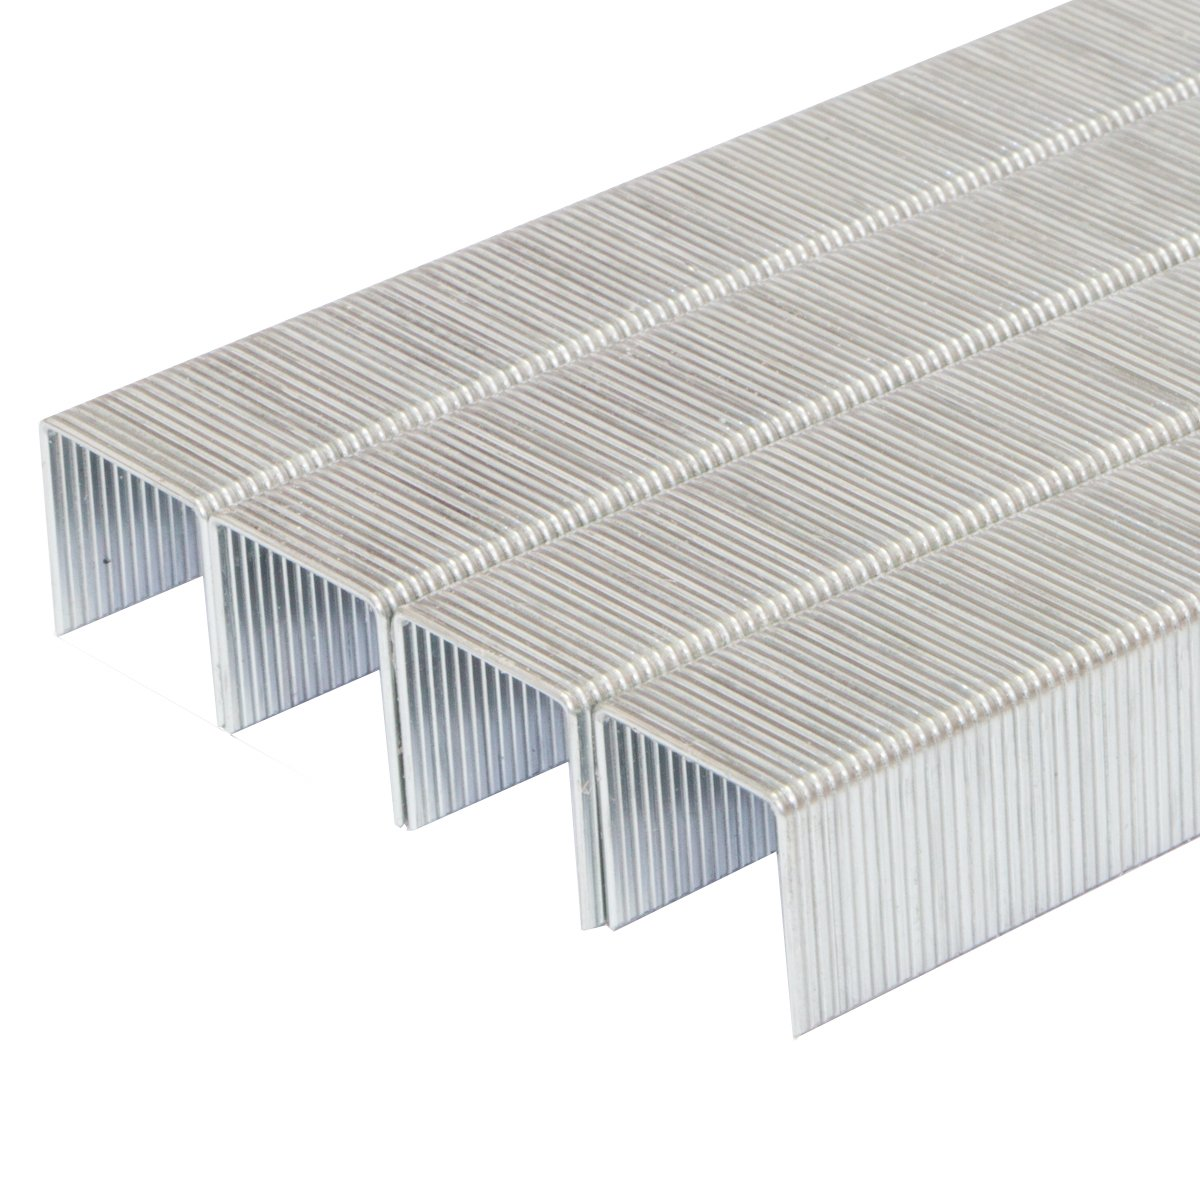 Heavy Duty Standard Staples 23/10 3/8' Length Free Office 1000pcs/box (10) by Free Office (Image #2)